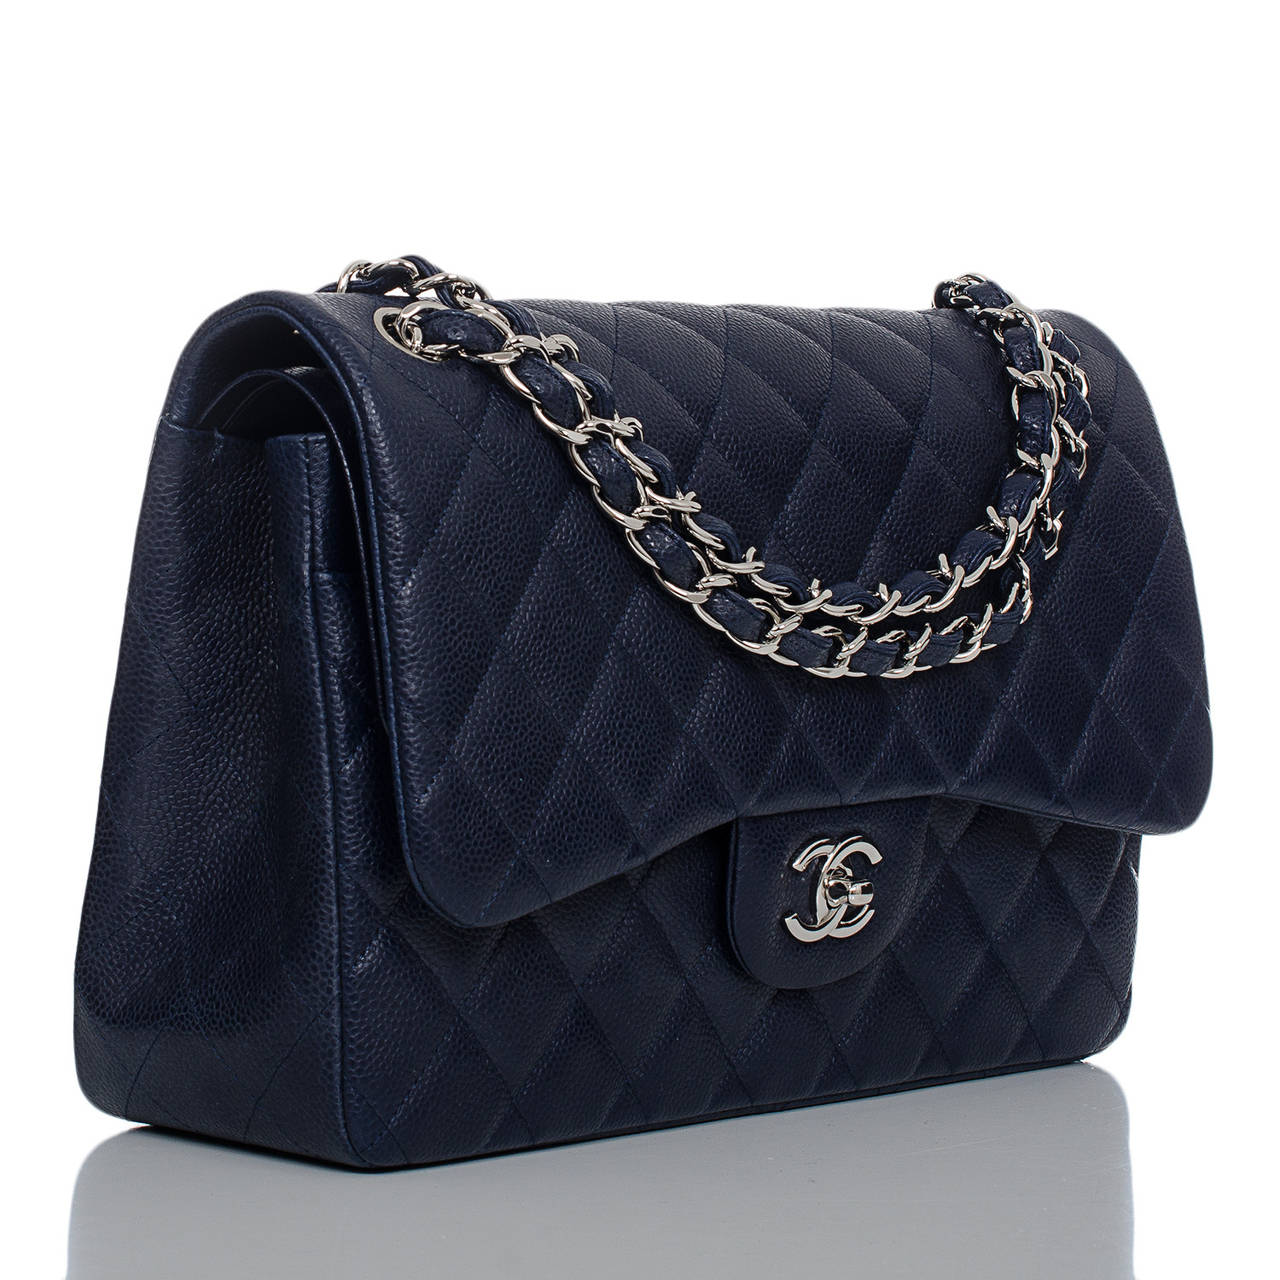 Chanel boy bag navy blue